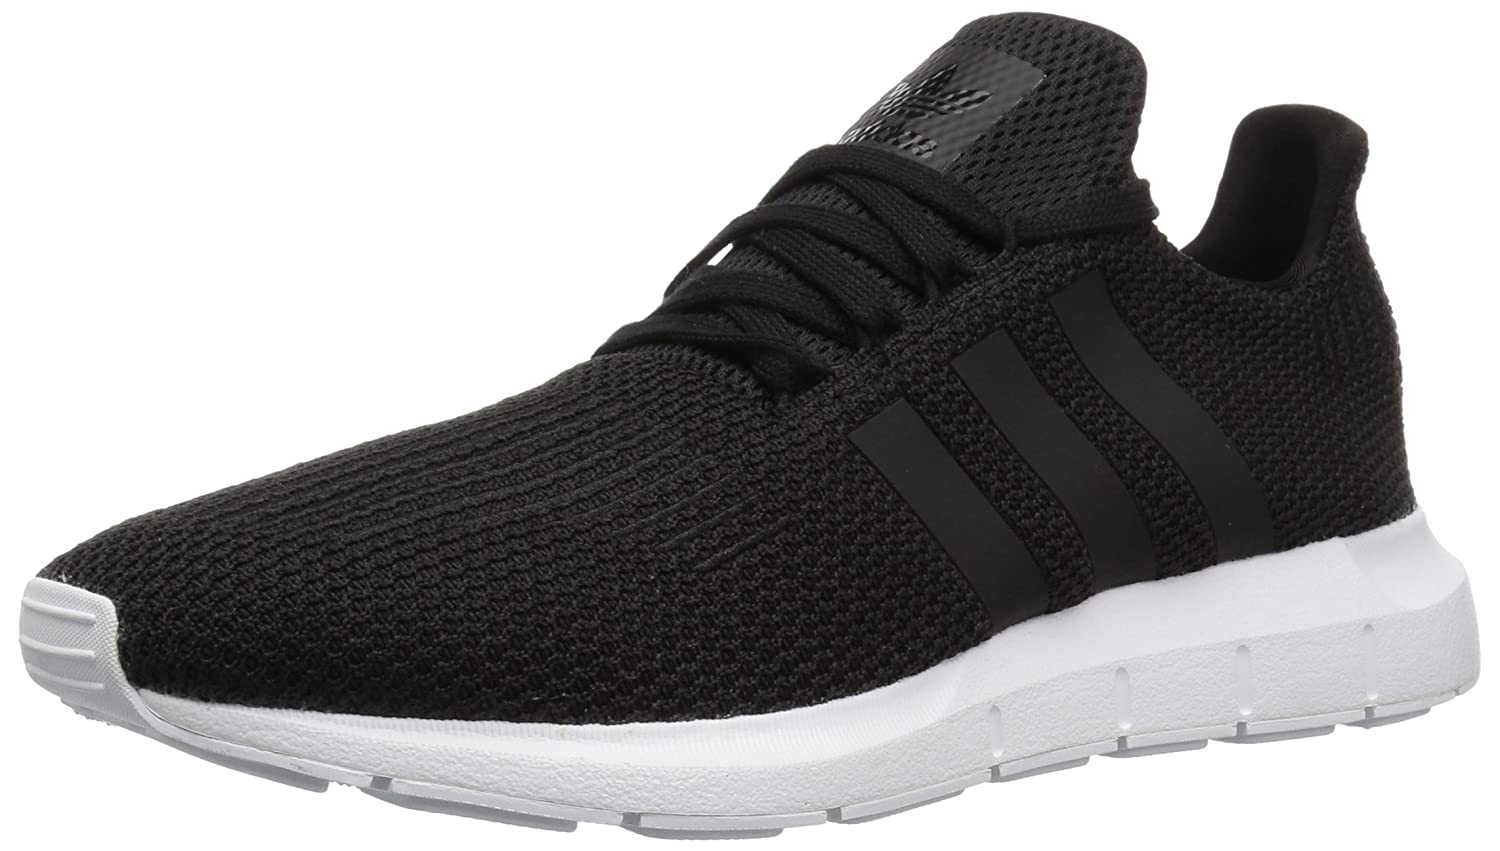 adidas Originals Men's Swift Running Shoe B078GWYTYK 13.5 D(M) US|Black/White